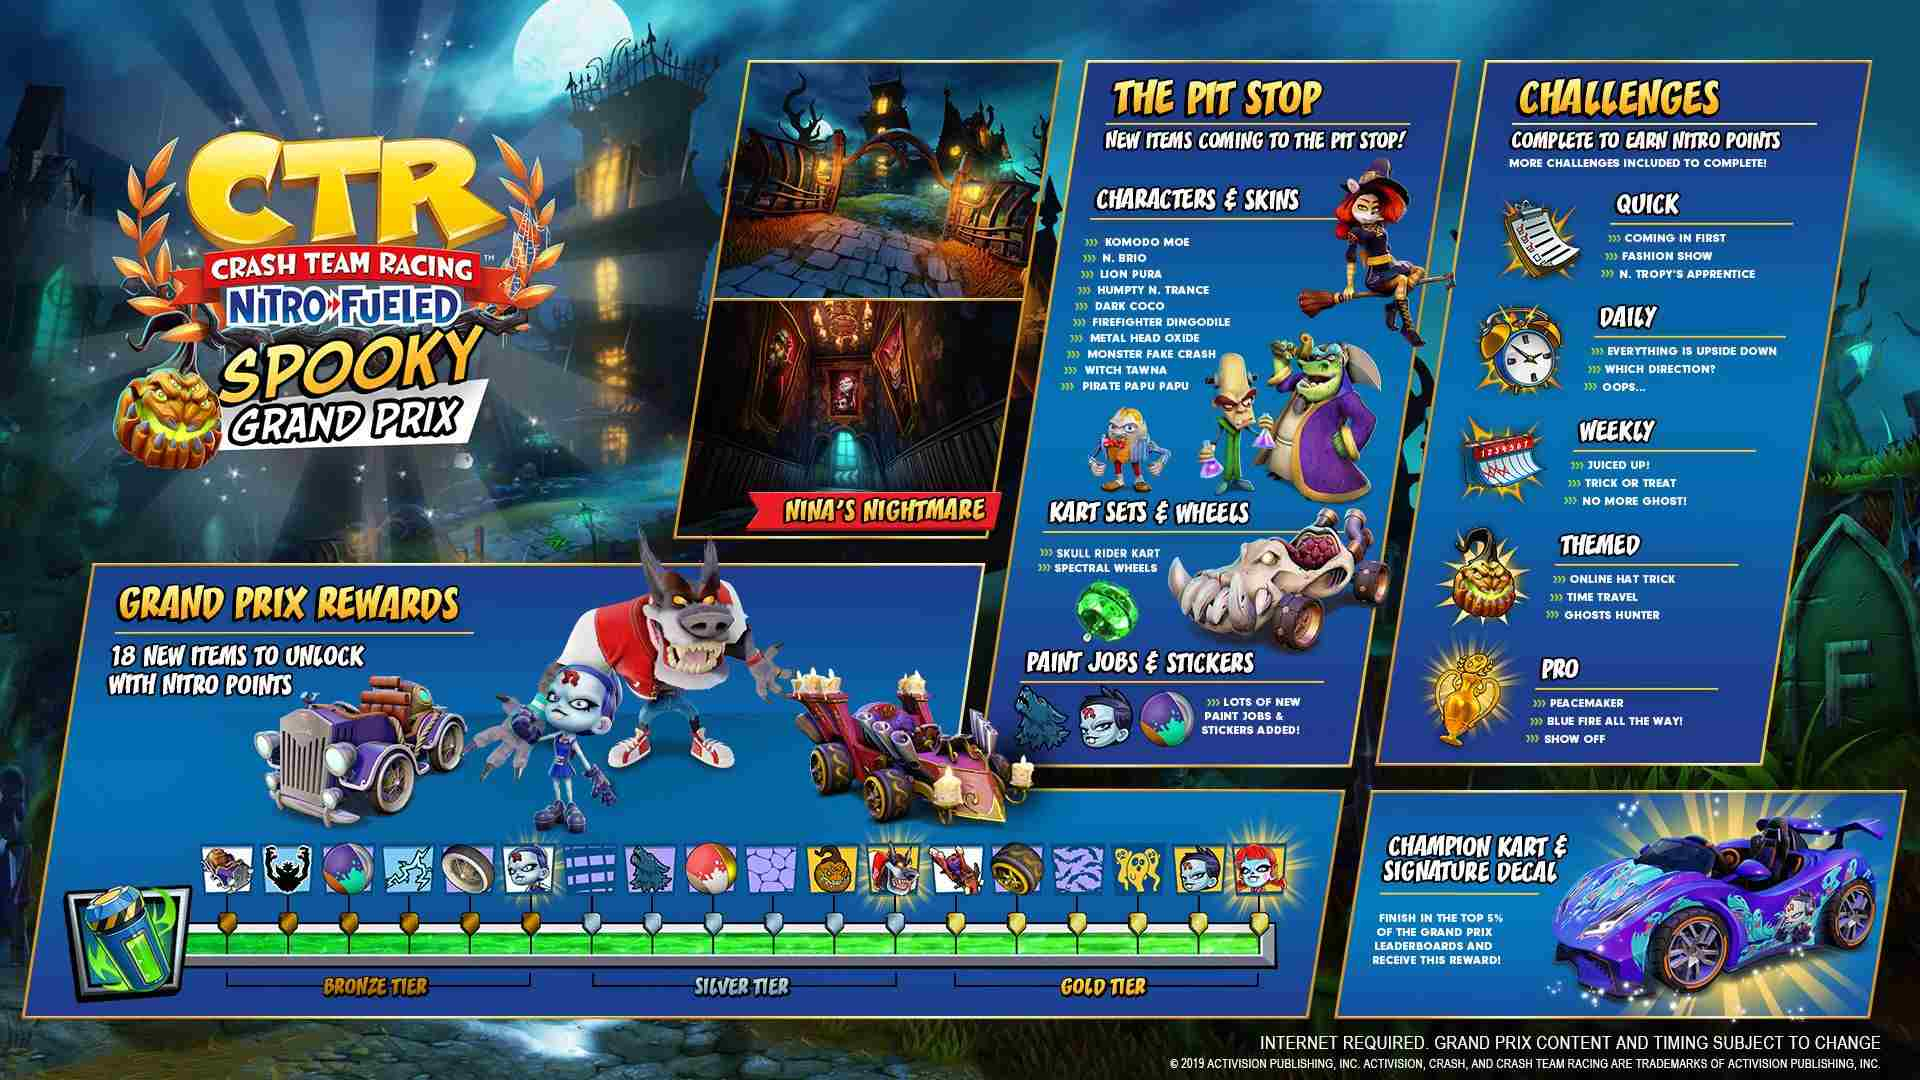 CTR Nitro Fueled roadmap GP Halloween